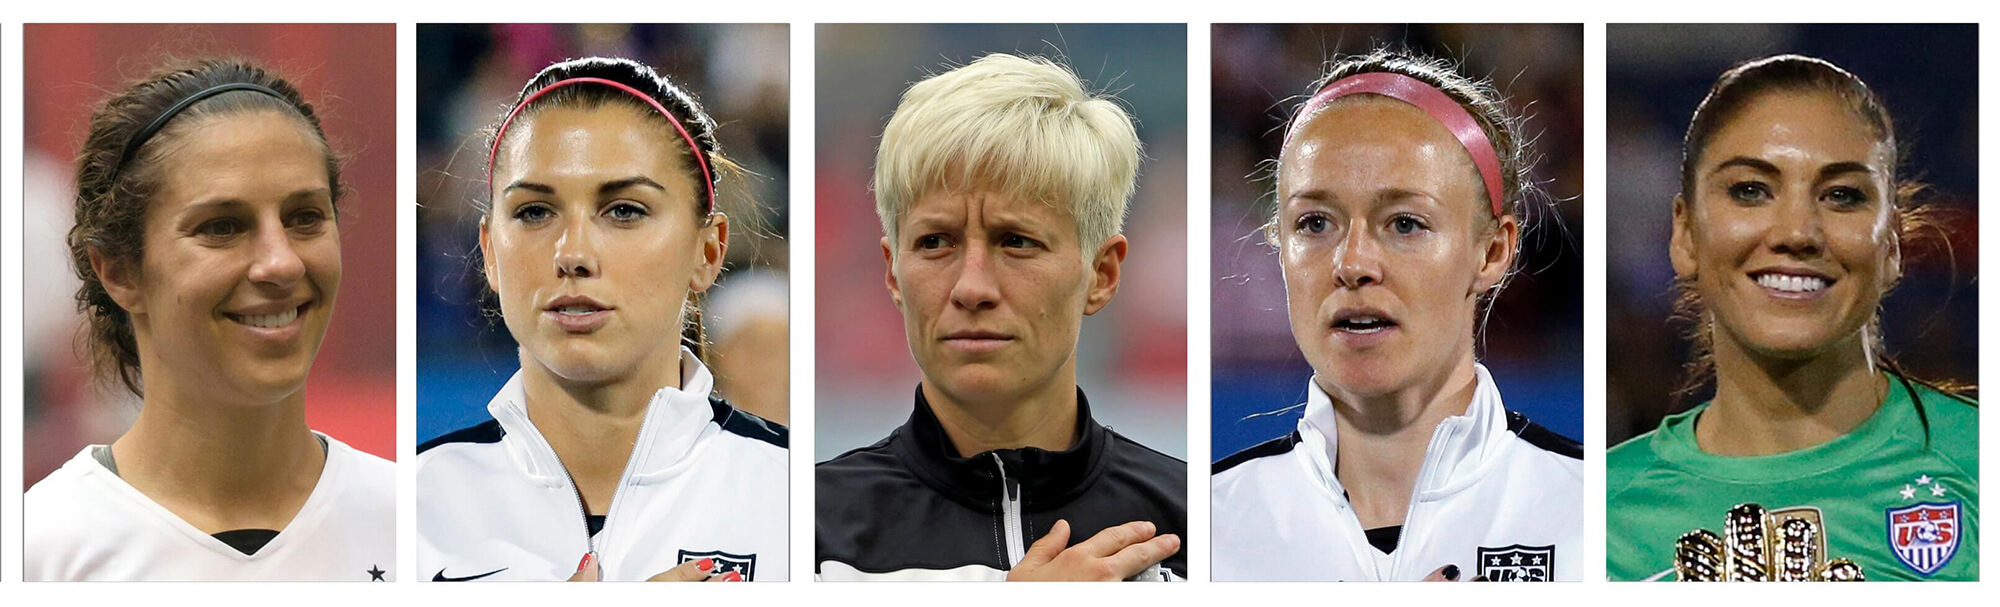 picture of Carli Lloyd, Alex Morgan, Megan Rapinoe, Becky Sauerbrunn and Hope Solo